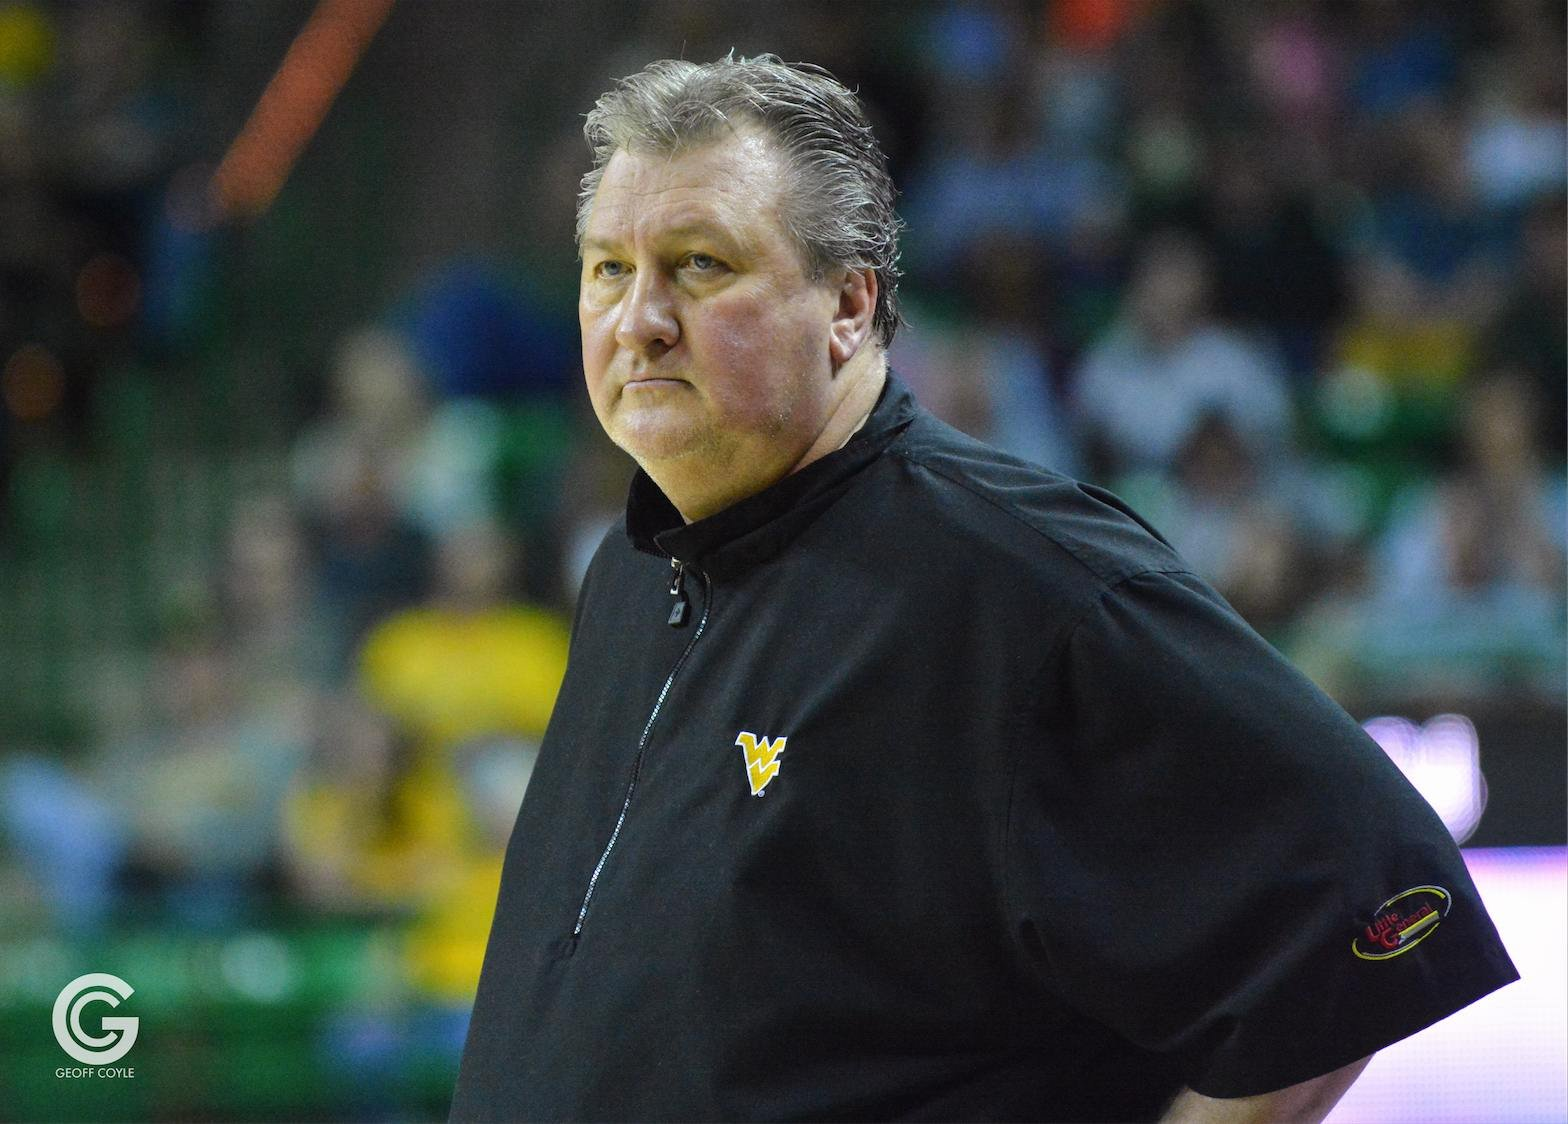 Bob Huggins looks on during the final moments of a win over Baylor in Waco. (PHOTO: Geoff Coyle)